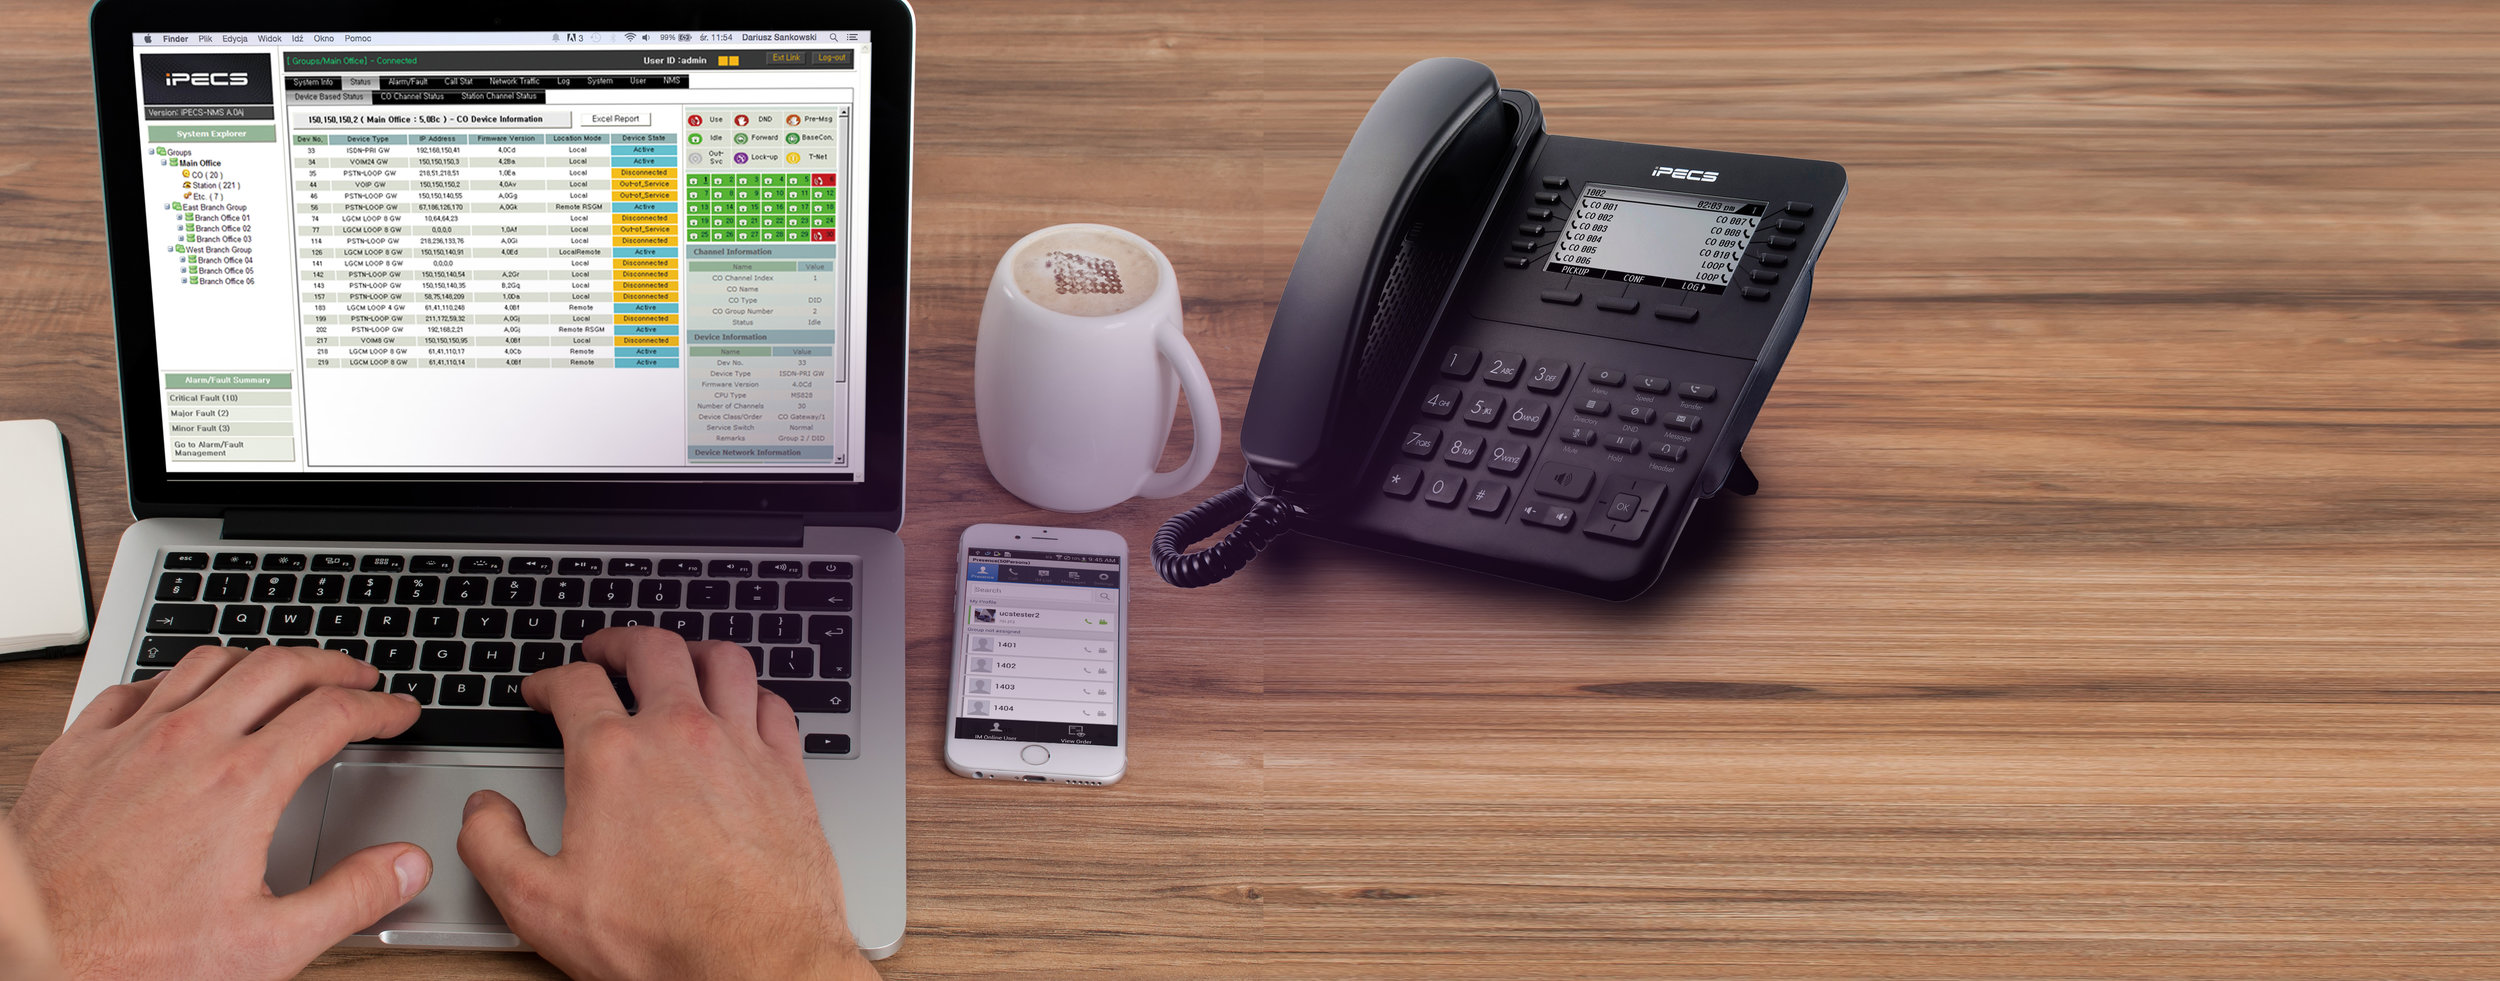 CONNECTING PEOPLE ANYWHERE   On Landlines, Mobiles, Laptops and Desktops